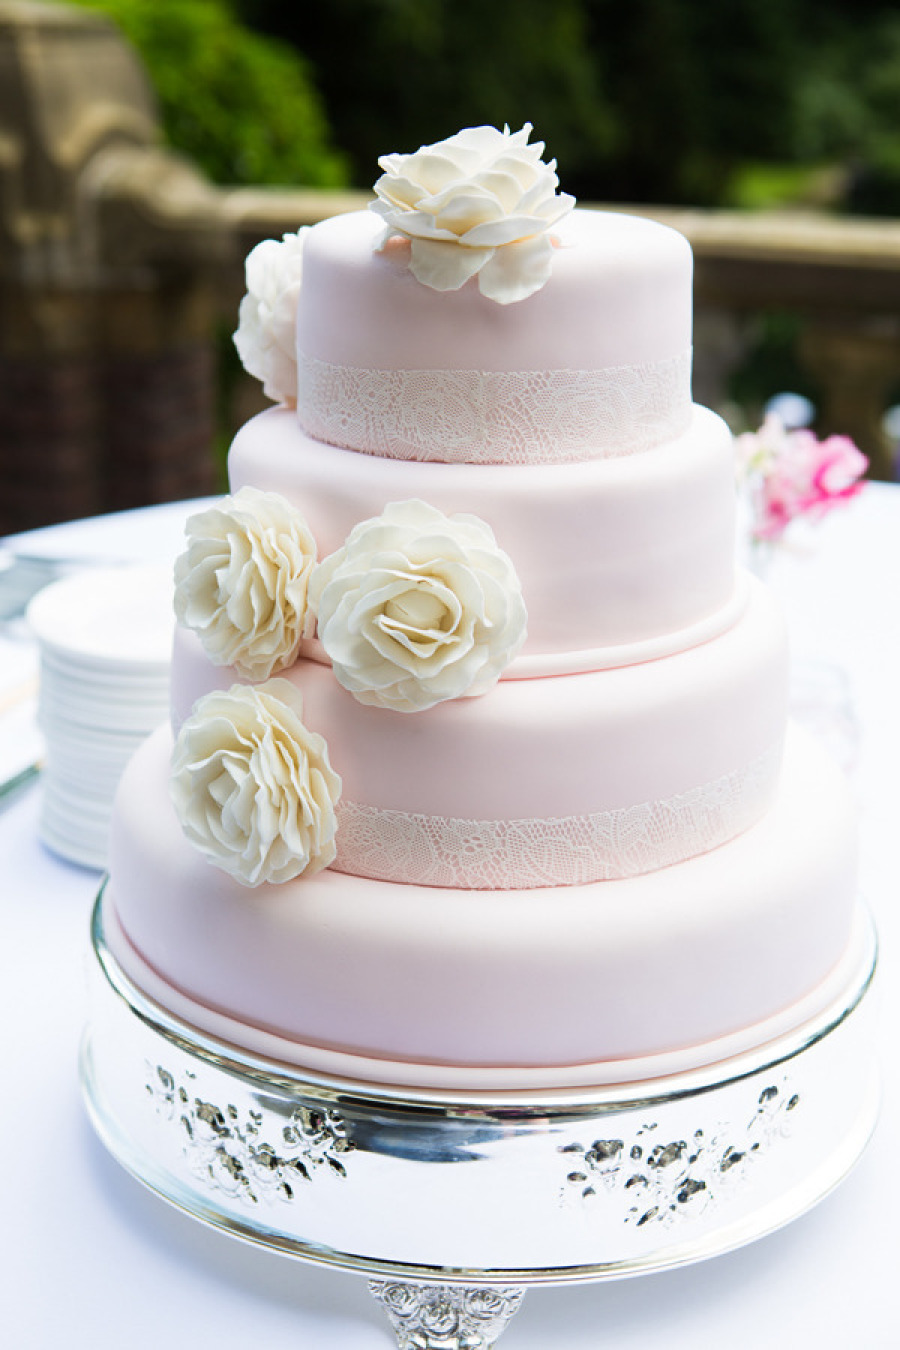 Awe Inspiring Wedding Cakes Ideas To To Blow Your Mind